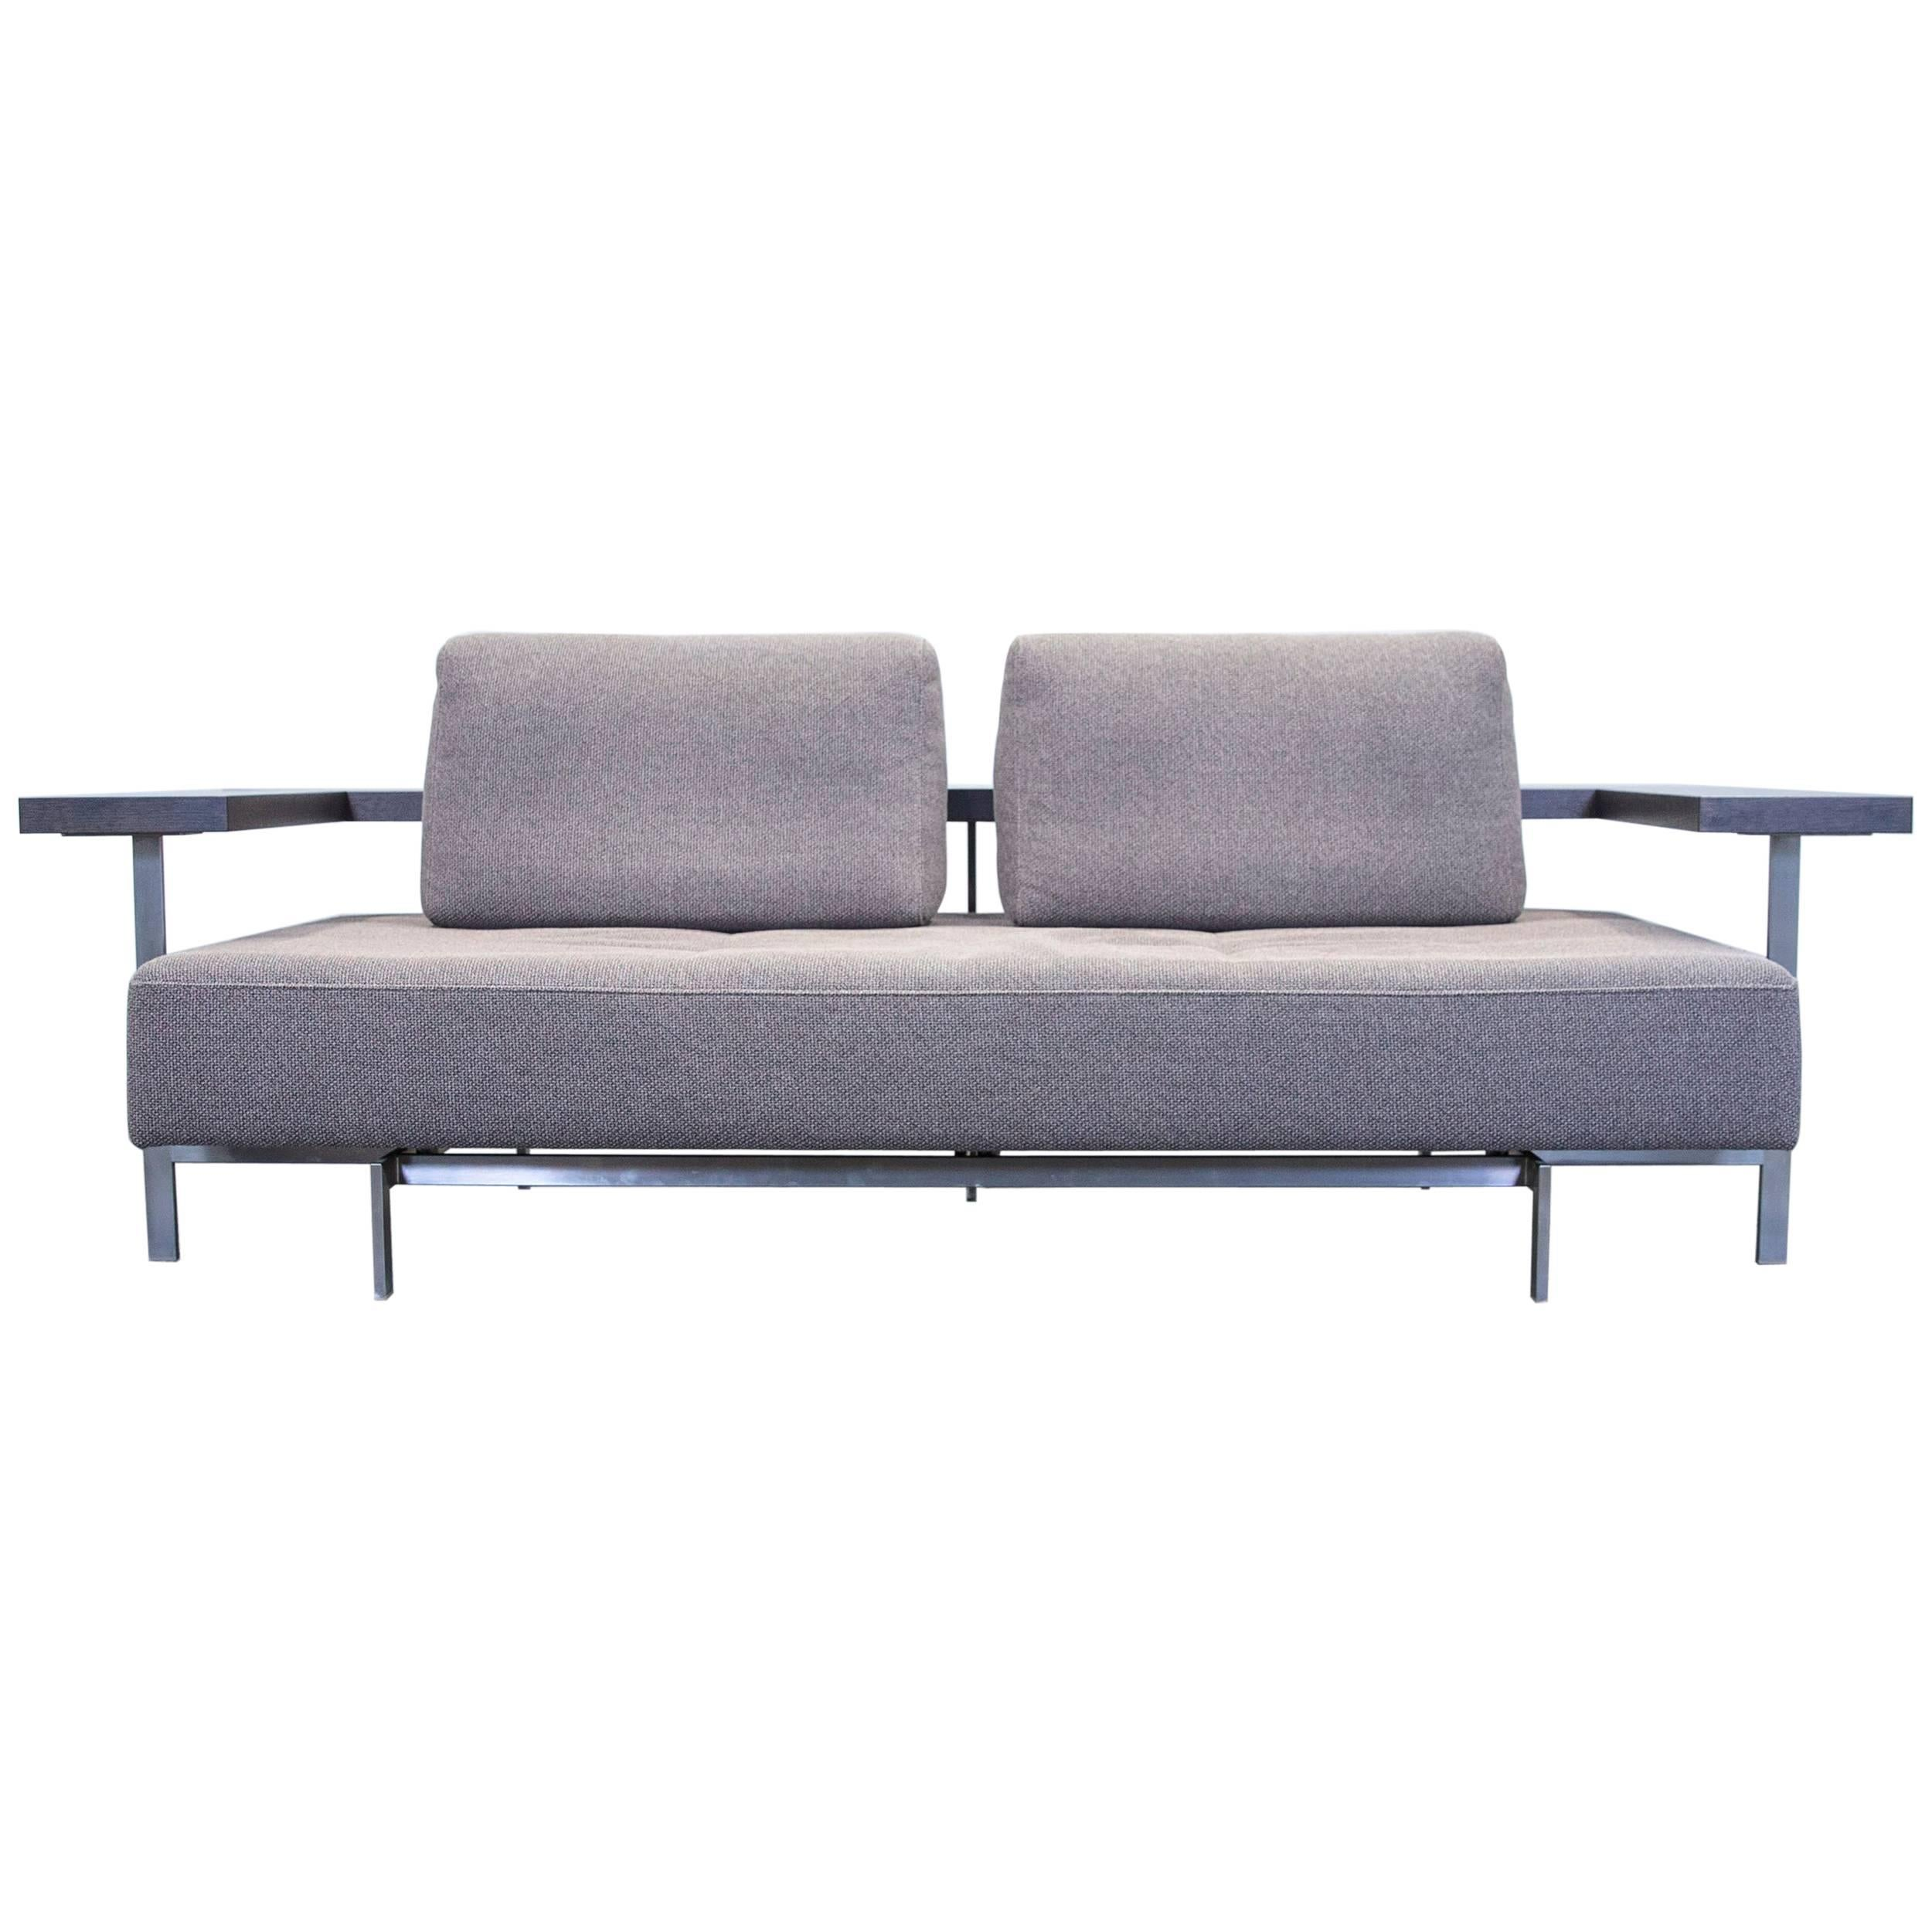 Rolf benz sofa beautiful rolf benz tira form follows for Benz couch